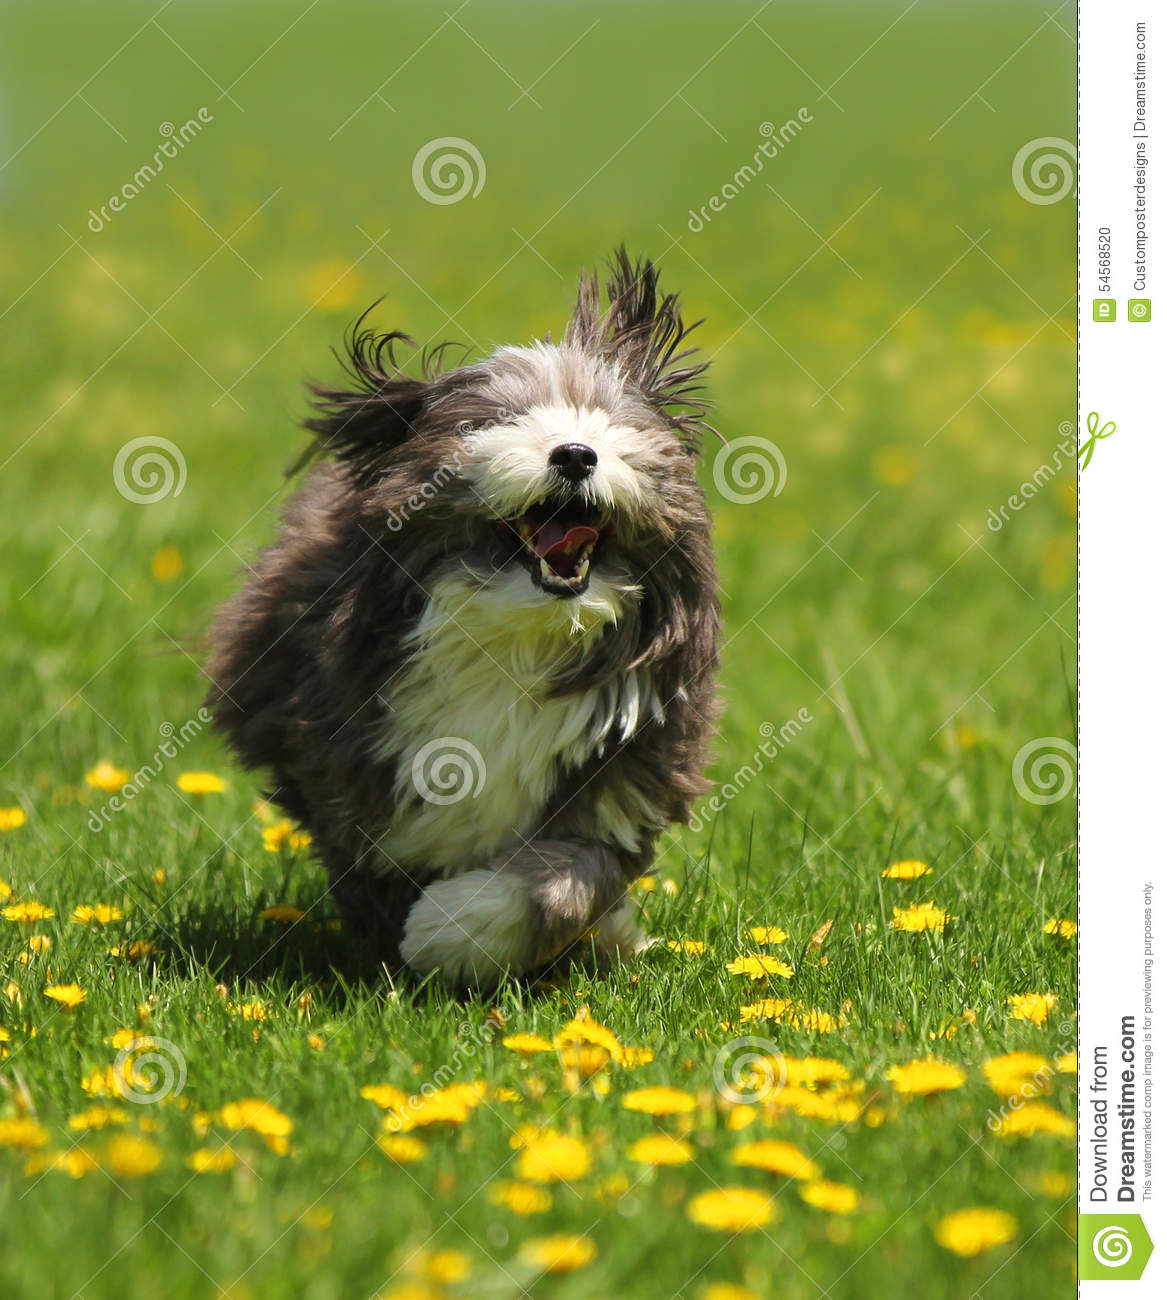 Download A dog running in a field. stock photo. Image of large - 54568520